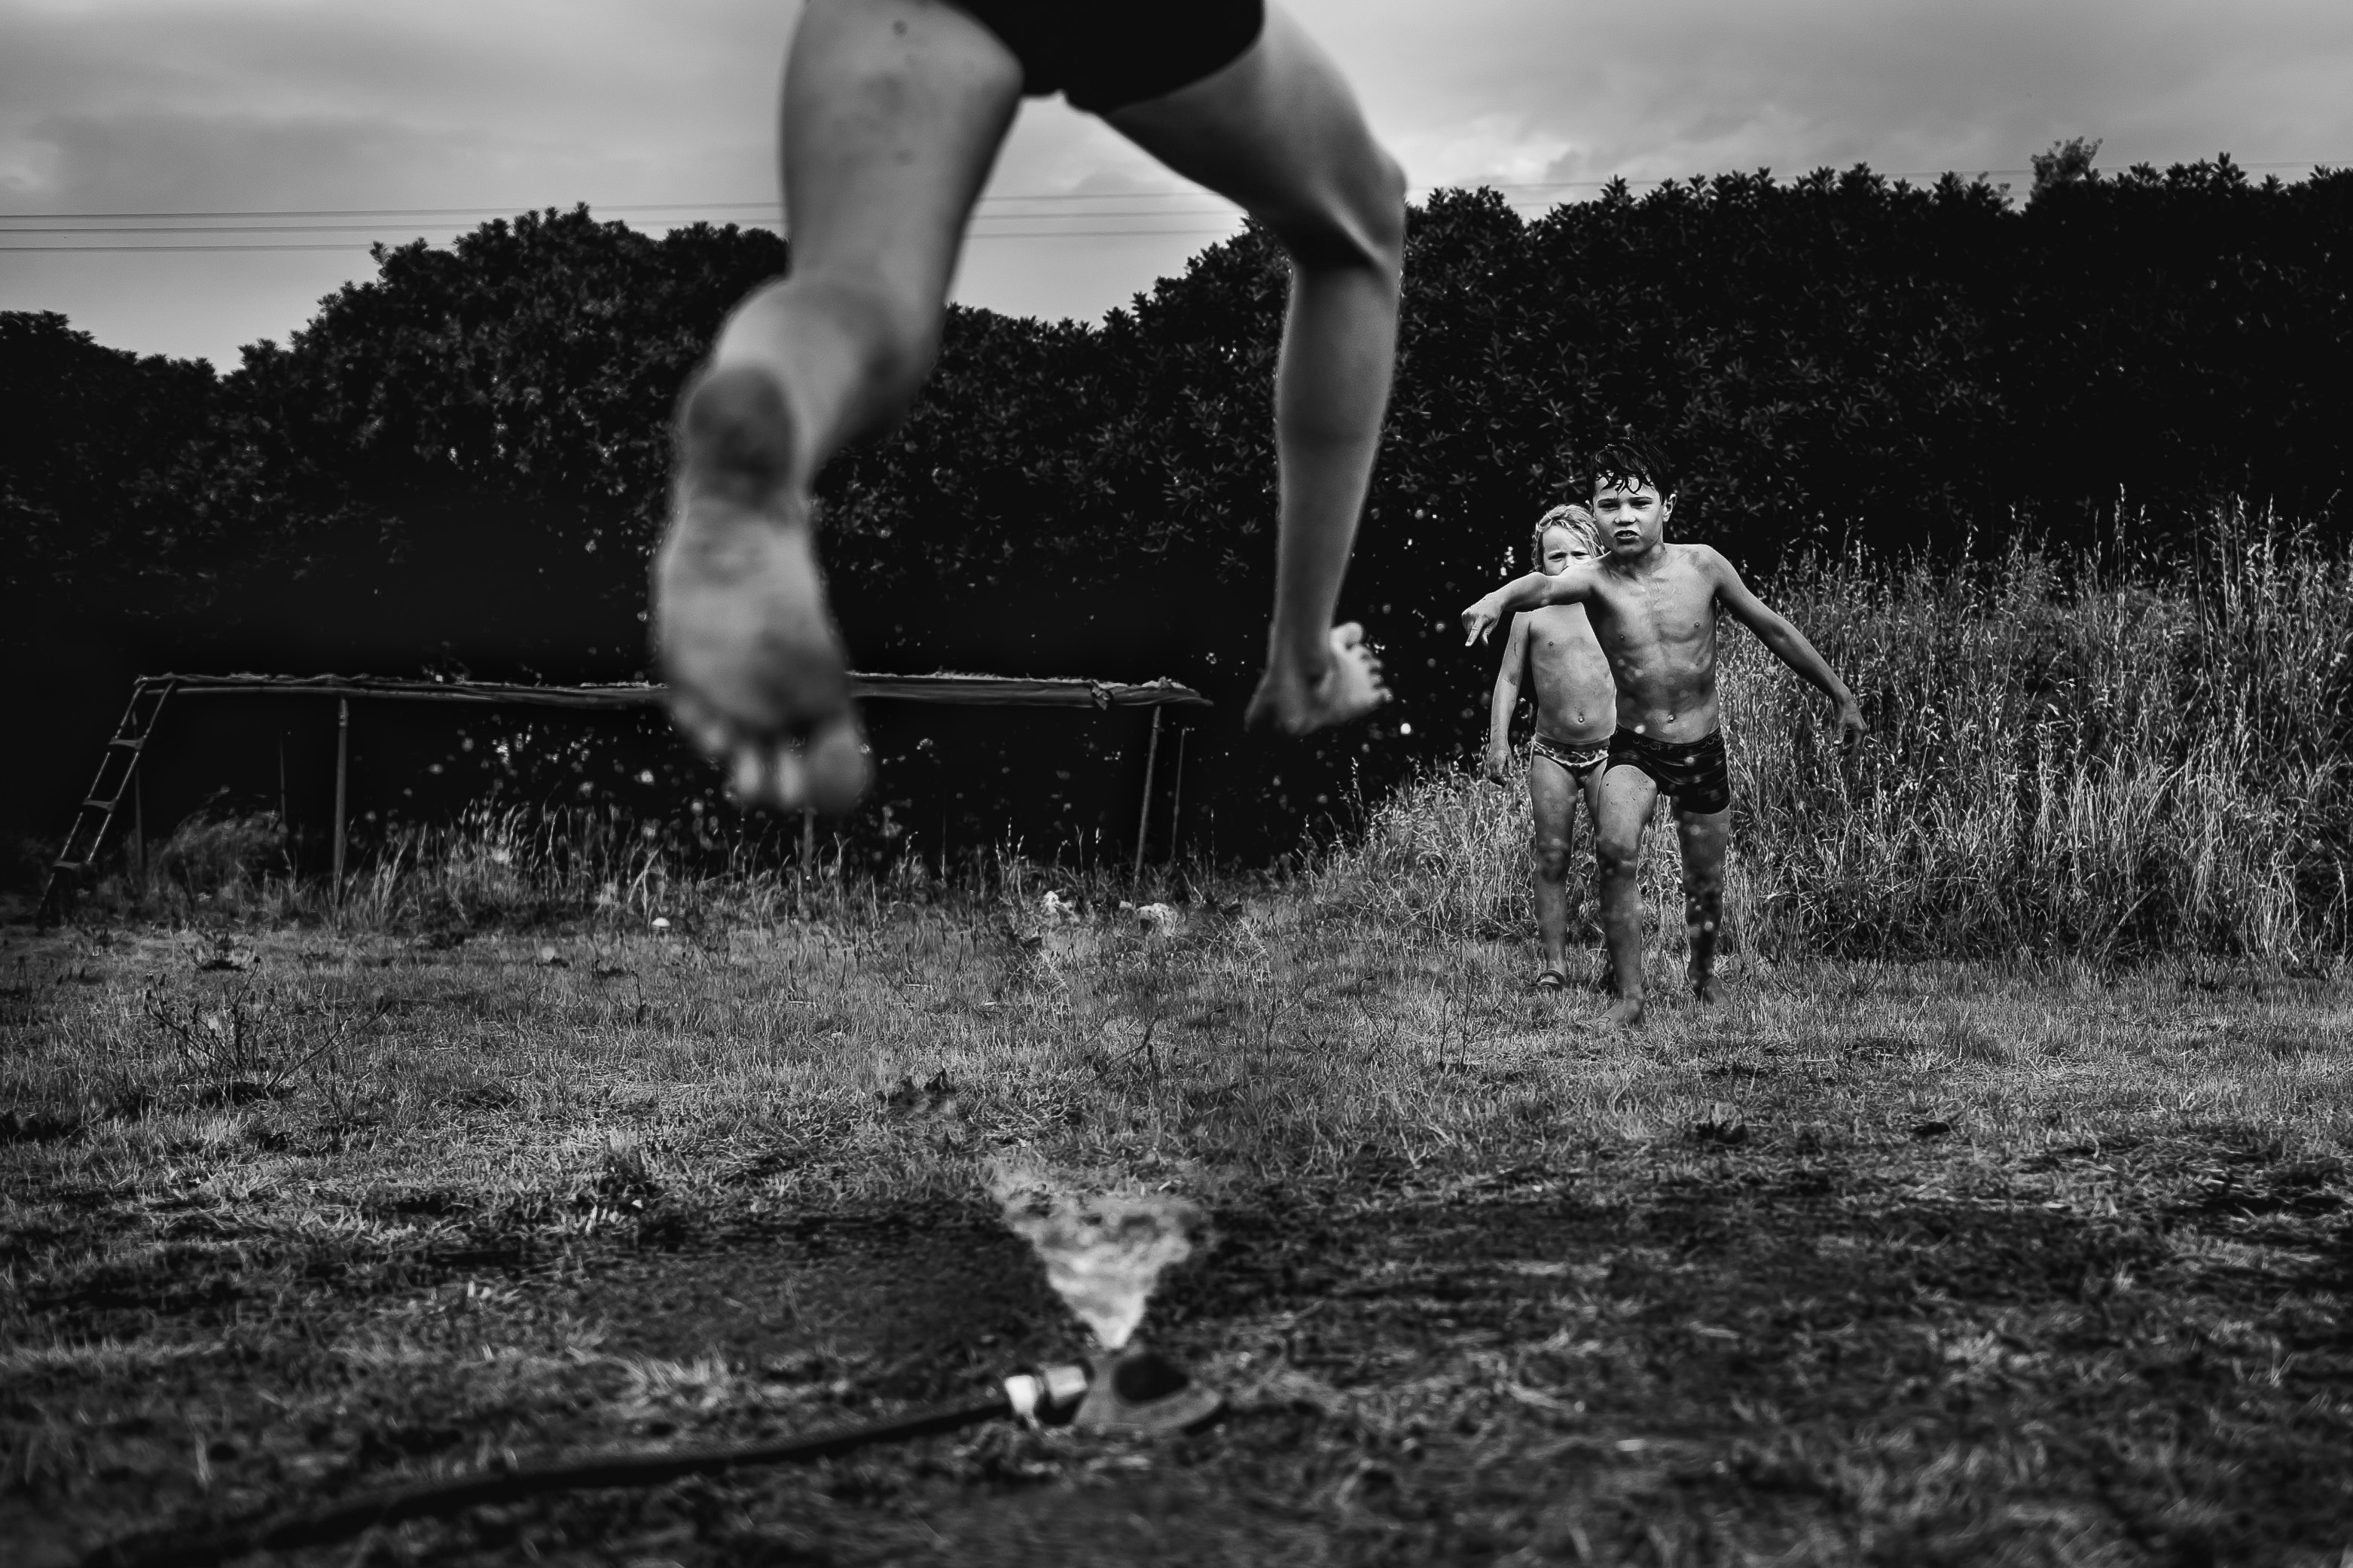 Niki Boon, Jump, Summer, 2015, boy jumping over sprinkler